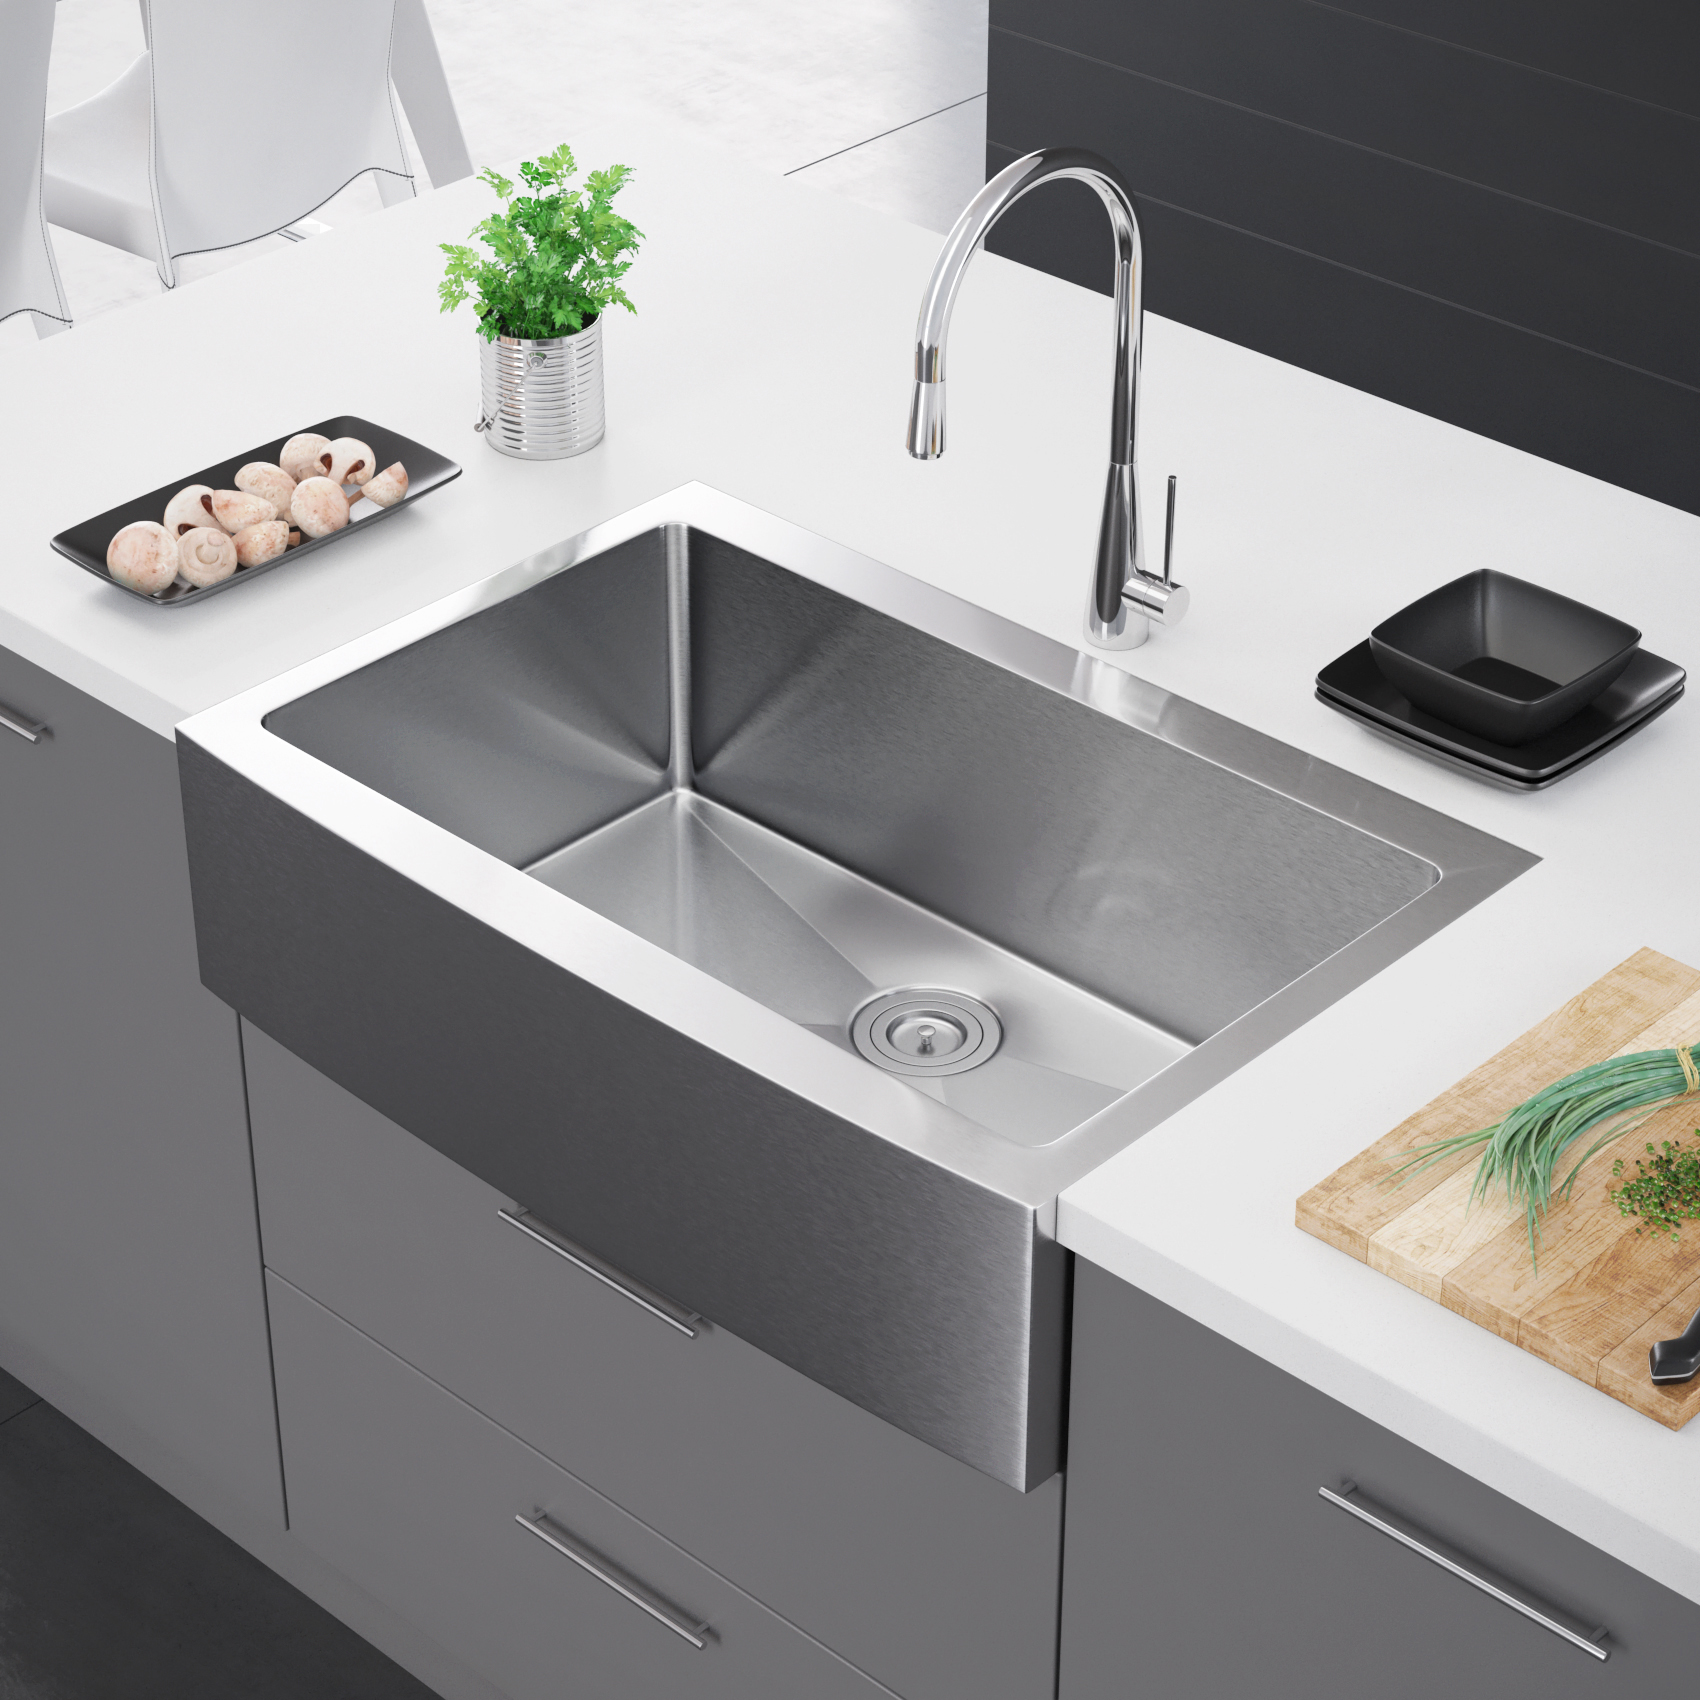 farmhouse kitchen sinks sink plumbing exclusive heritage 33 x 22 single bowl stainless steel